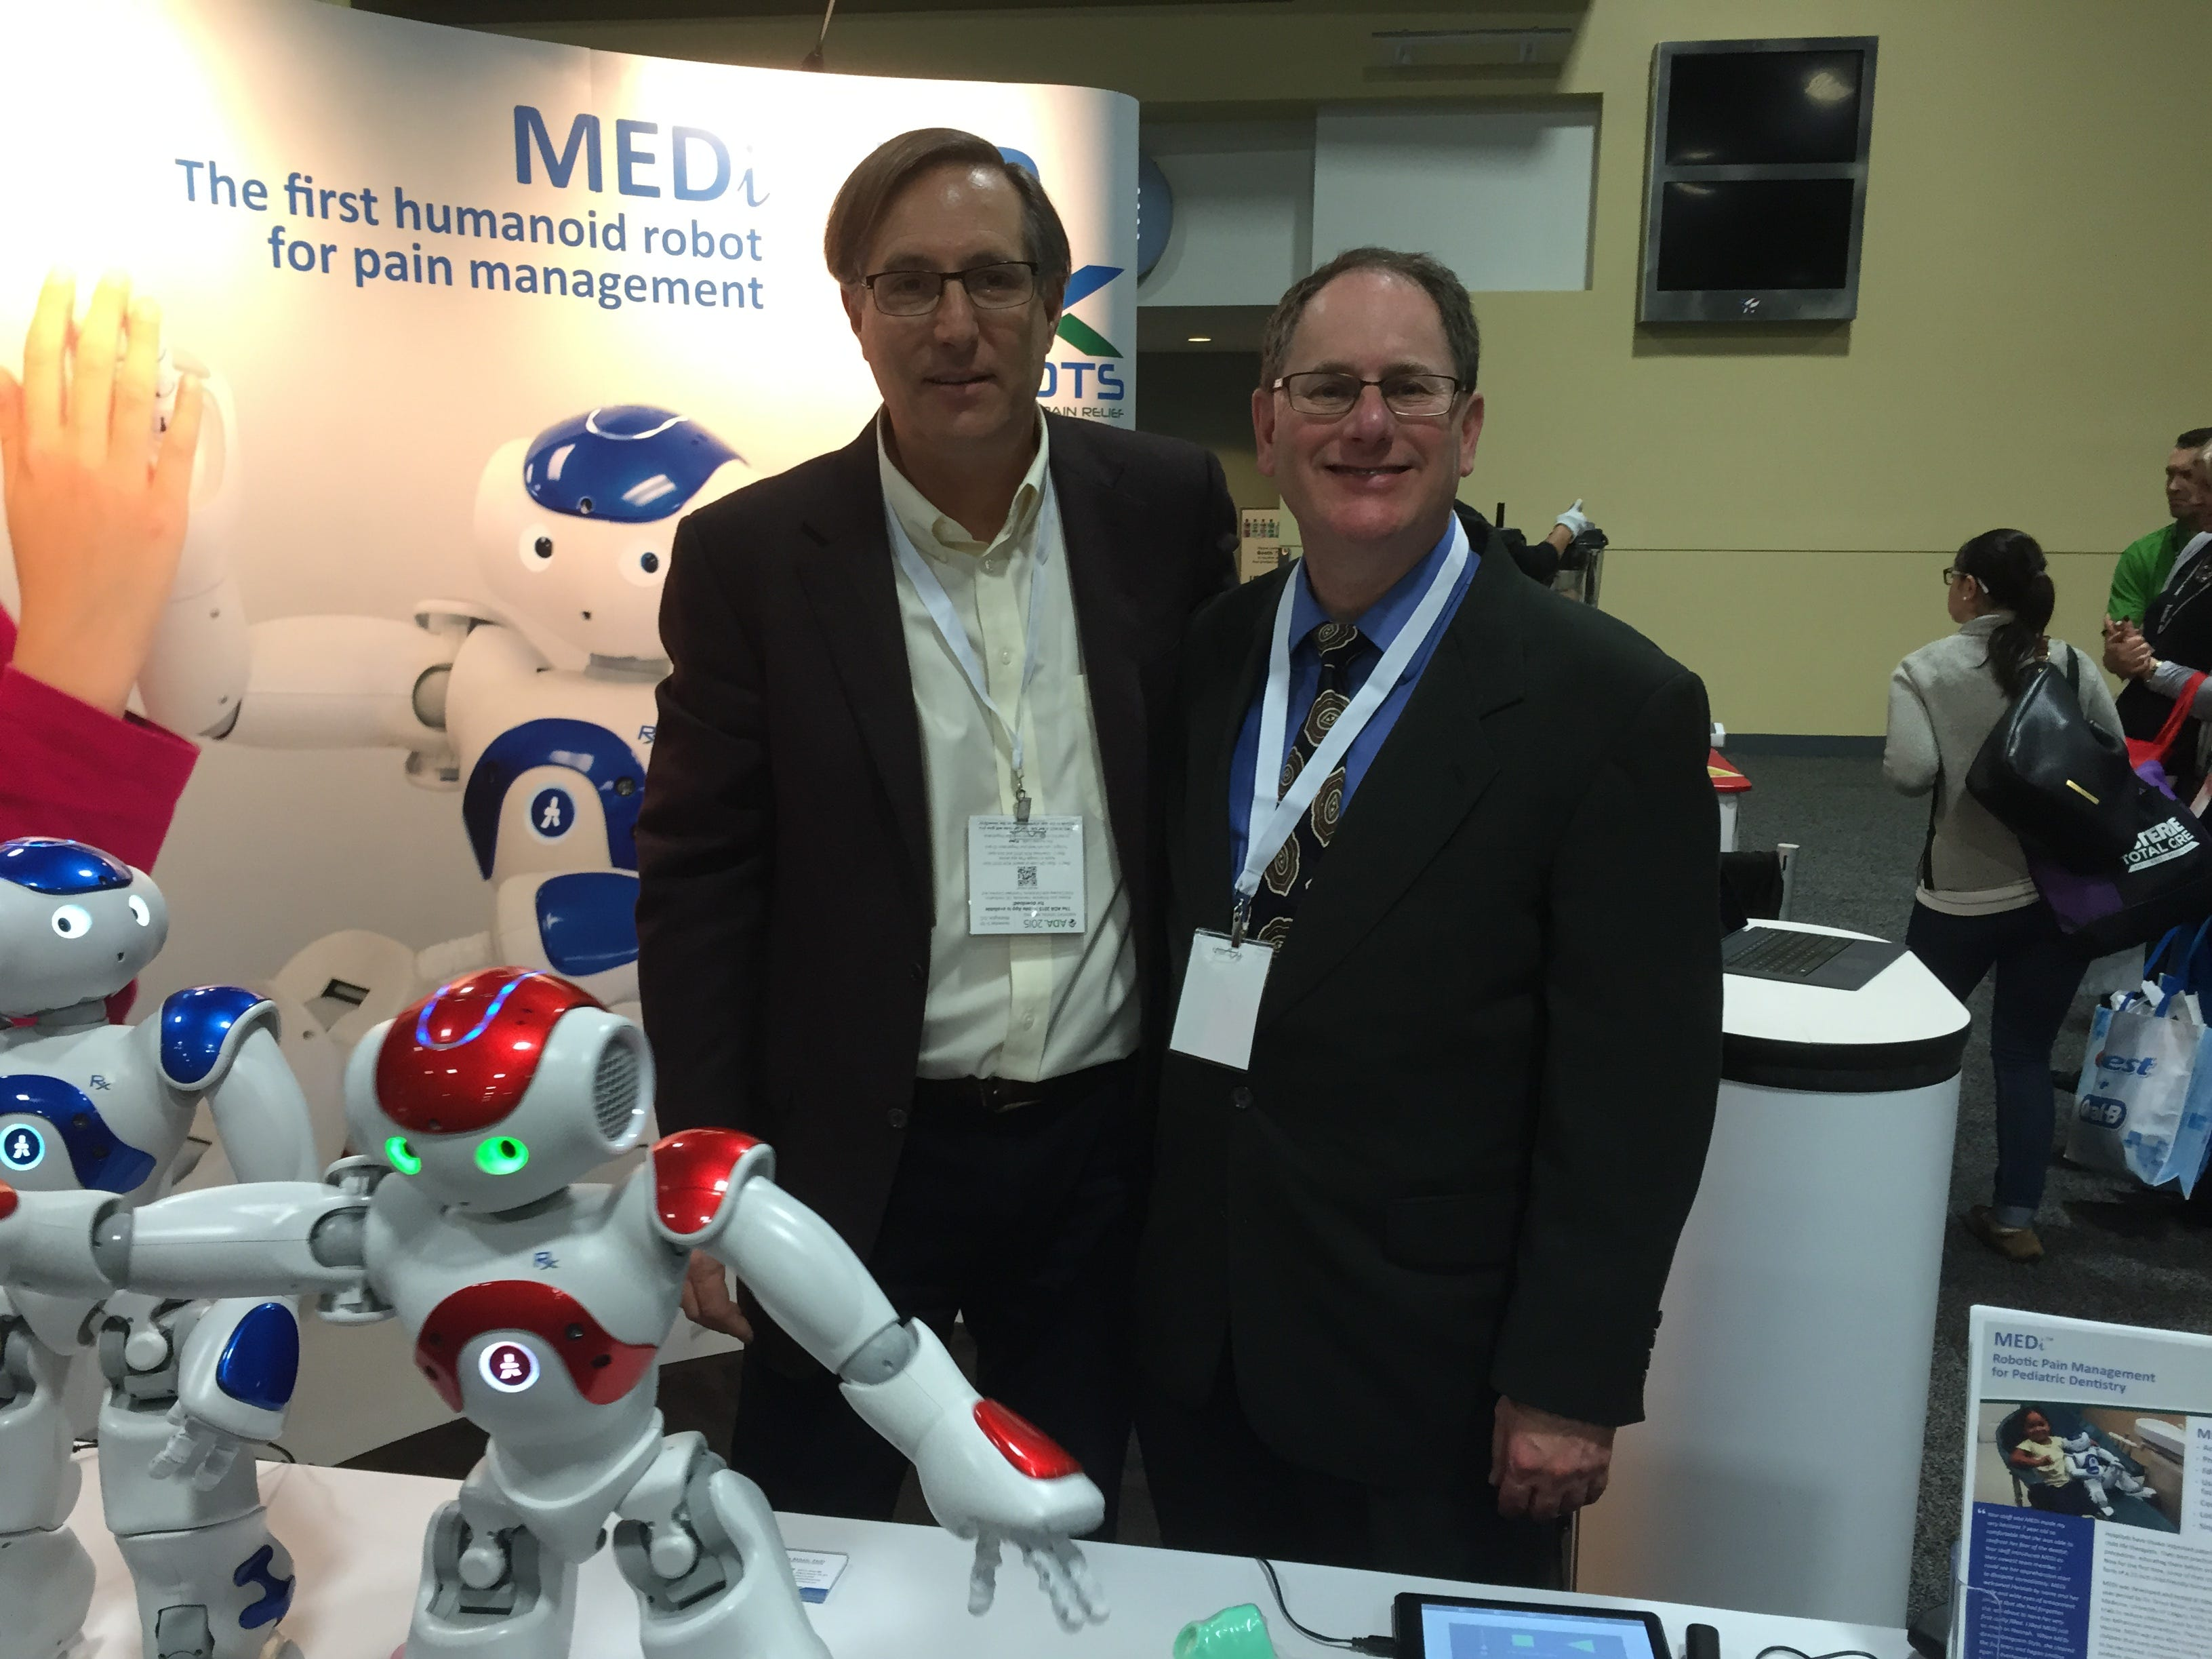 Mark Williams, formerly of RX Robots out of Canada, introduced Dr. Richard Olin of Rahway to the use of robots for medical use. Now on staff for four years at Olin Dental Group, Medithe robot isprogrammed to act asa companion along side children in a dental operatory. Medi is able to speak to children at their level and decrease their concerns, anxietyand fears when they come to the dentist.